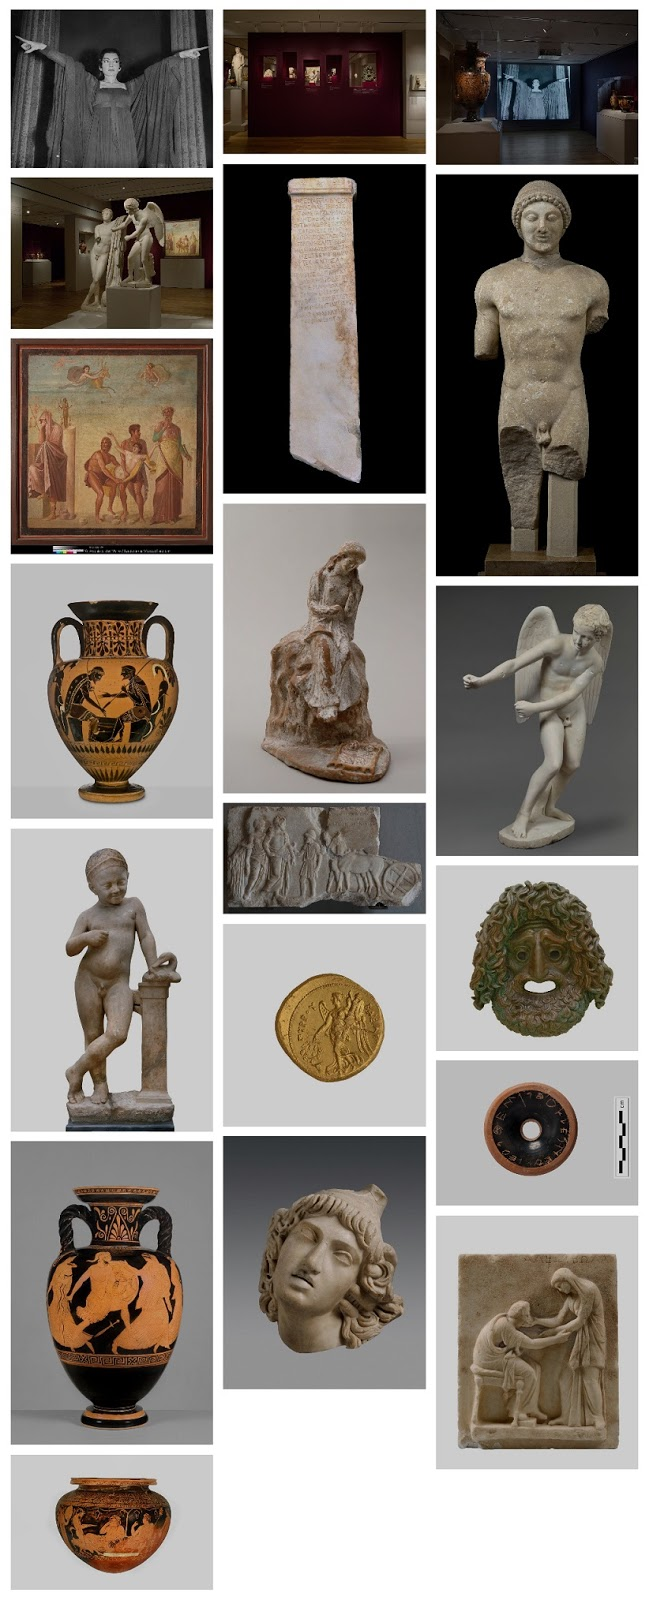 'A World of Emotions: Ancient Greece, 700 BC – 200 AD' at the Onassis Cultural Center, NY